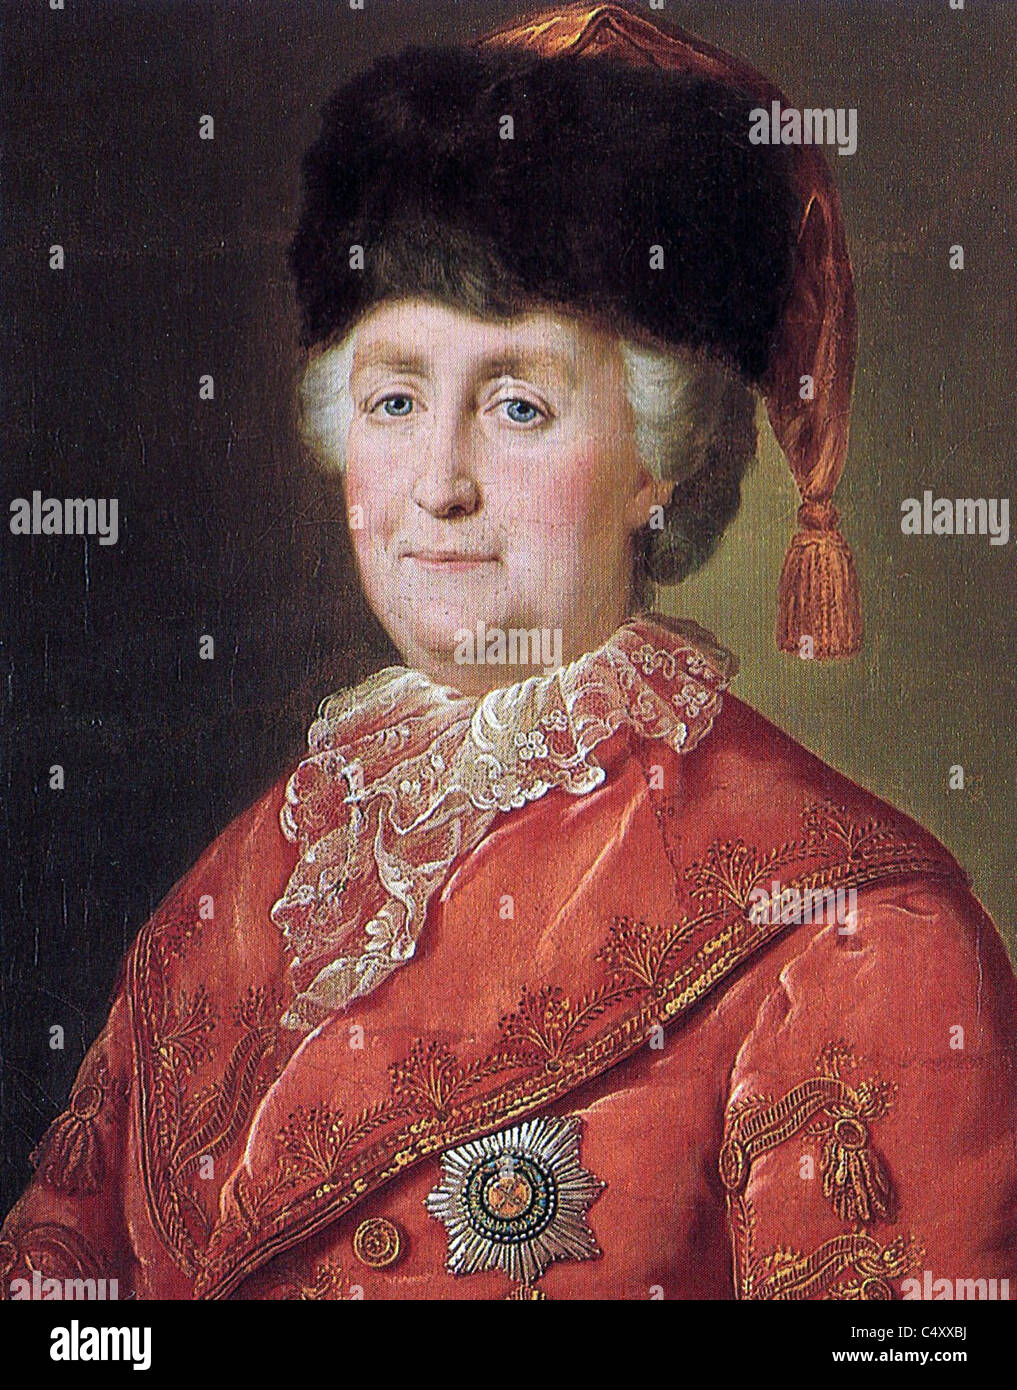 Empress Catherine II of Russia, Catherine the Great. - Stock Image